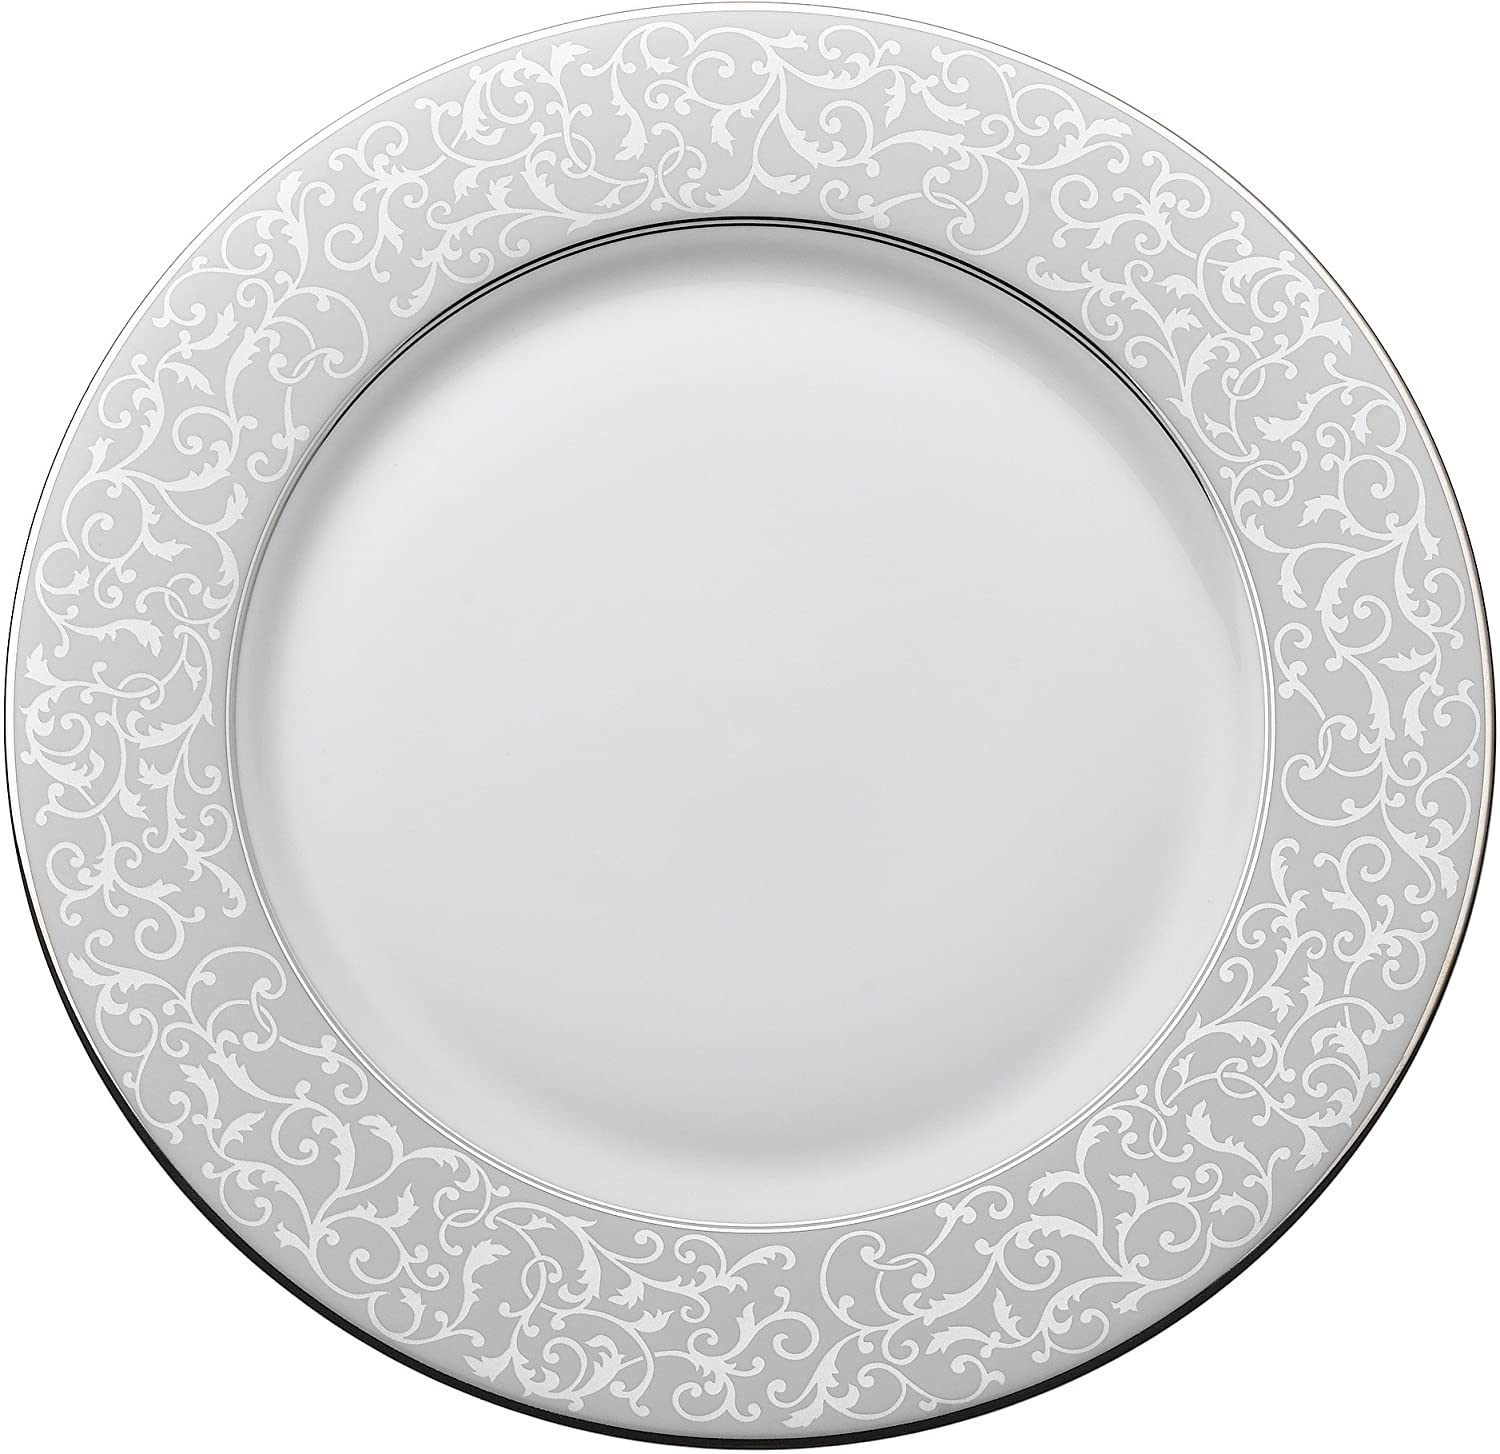 Mikasa Parchment Dinner Plate outlet - 10.75-Inch L3438-201 White High order